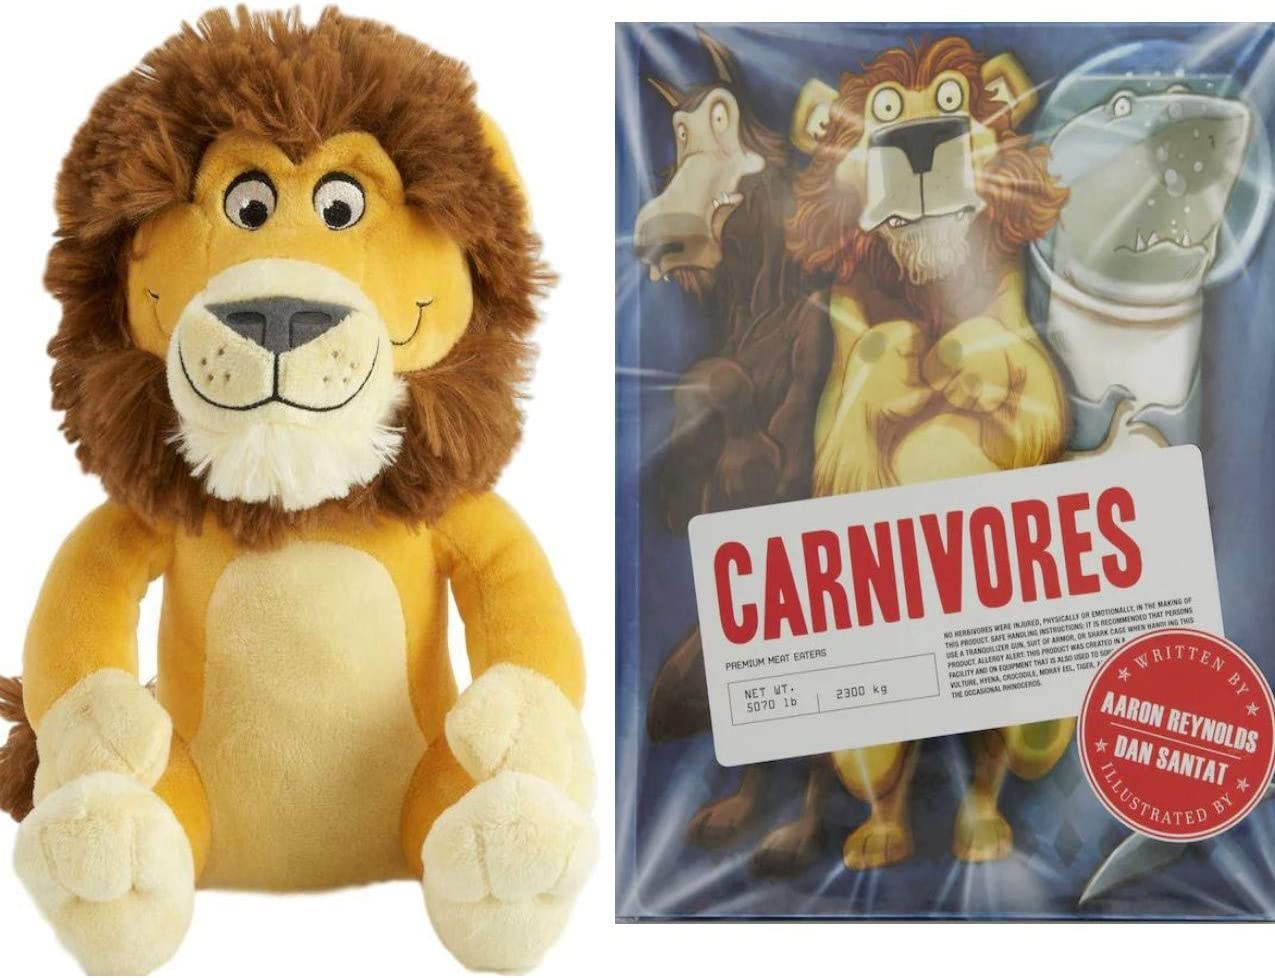 KOHLS CARE Plush Lion Toy and Carnivores Book Bedtime Story Book for Kids Bundle